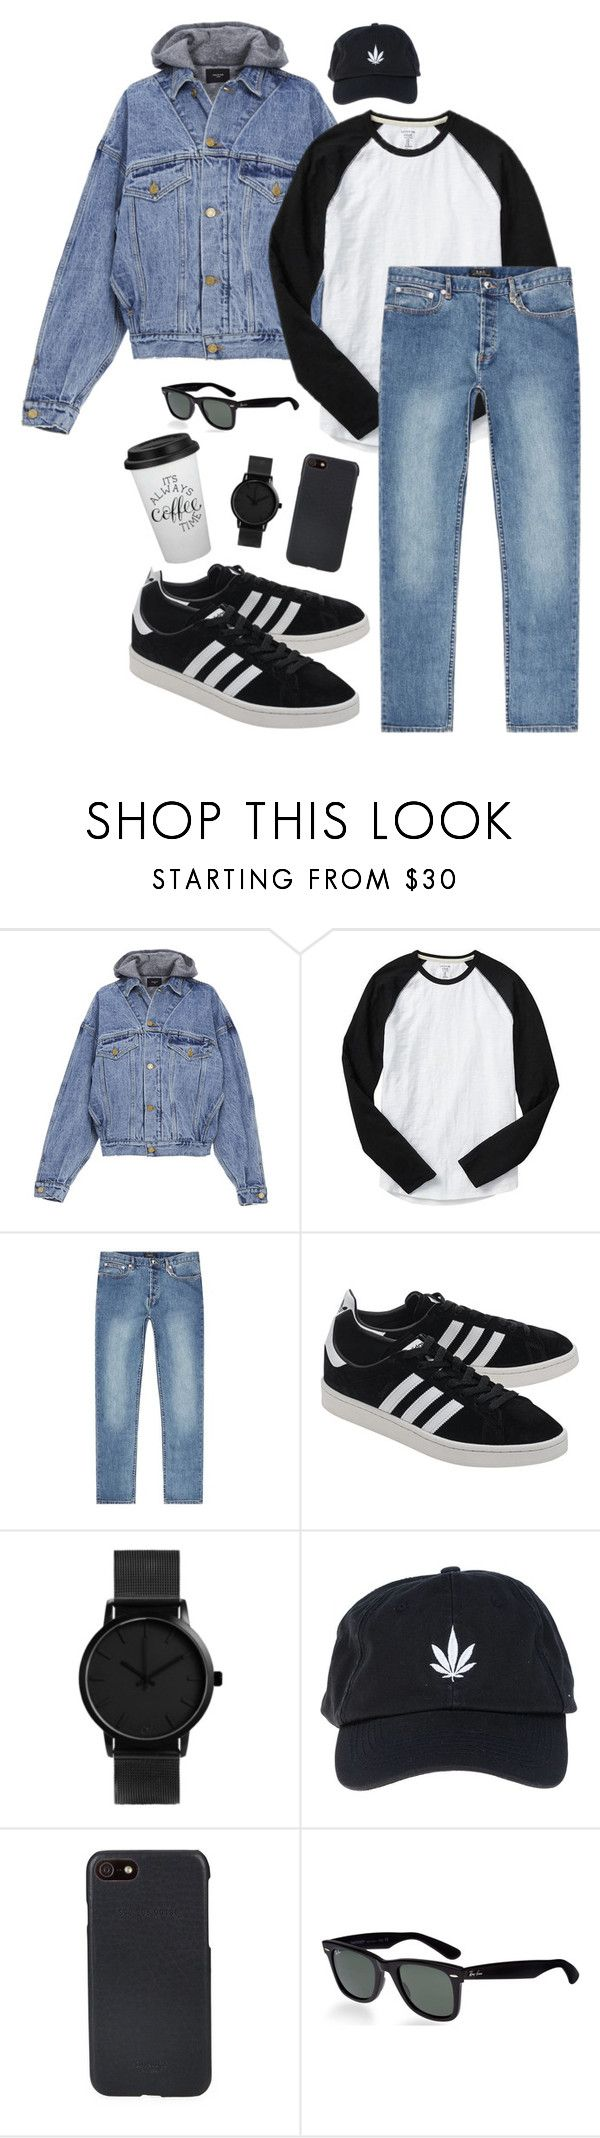 """""""look male"""" by rushanaofficials ❤ liked on Polyvore featuring Fear of God, Gap, A.P.C., adidas Originals, Palm Angels, Shinola, Ray-Ban, men's fashion and menswear"""